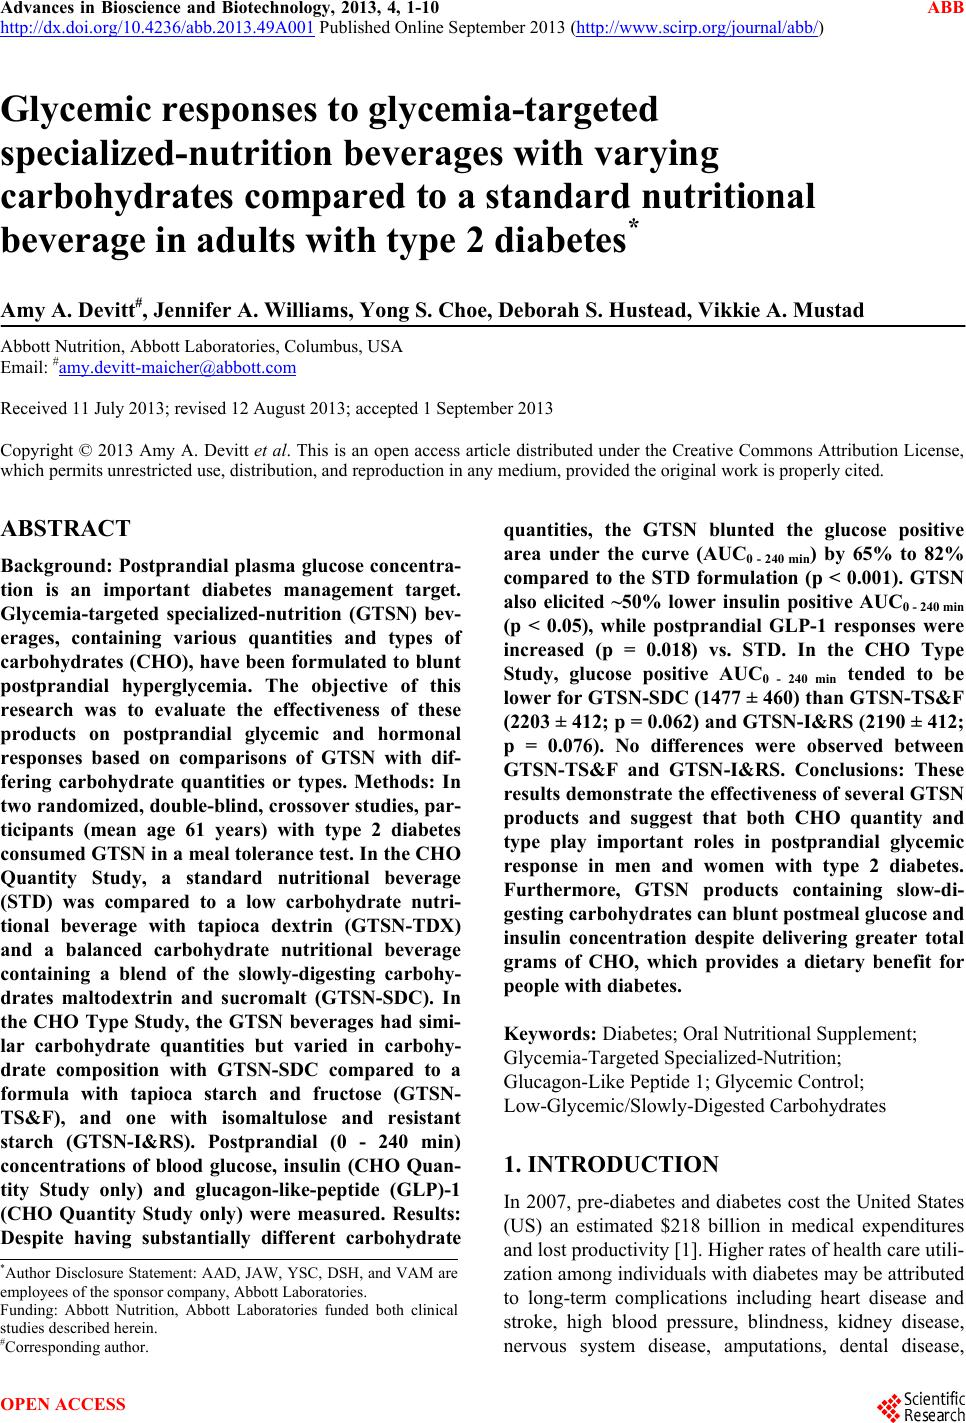 Glycemic responses to glycemia-targeted specialized